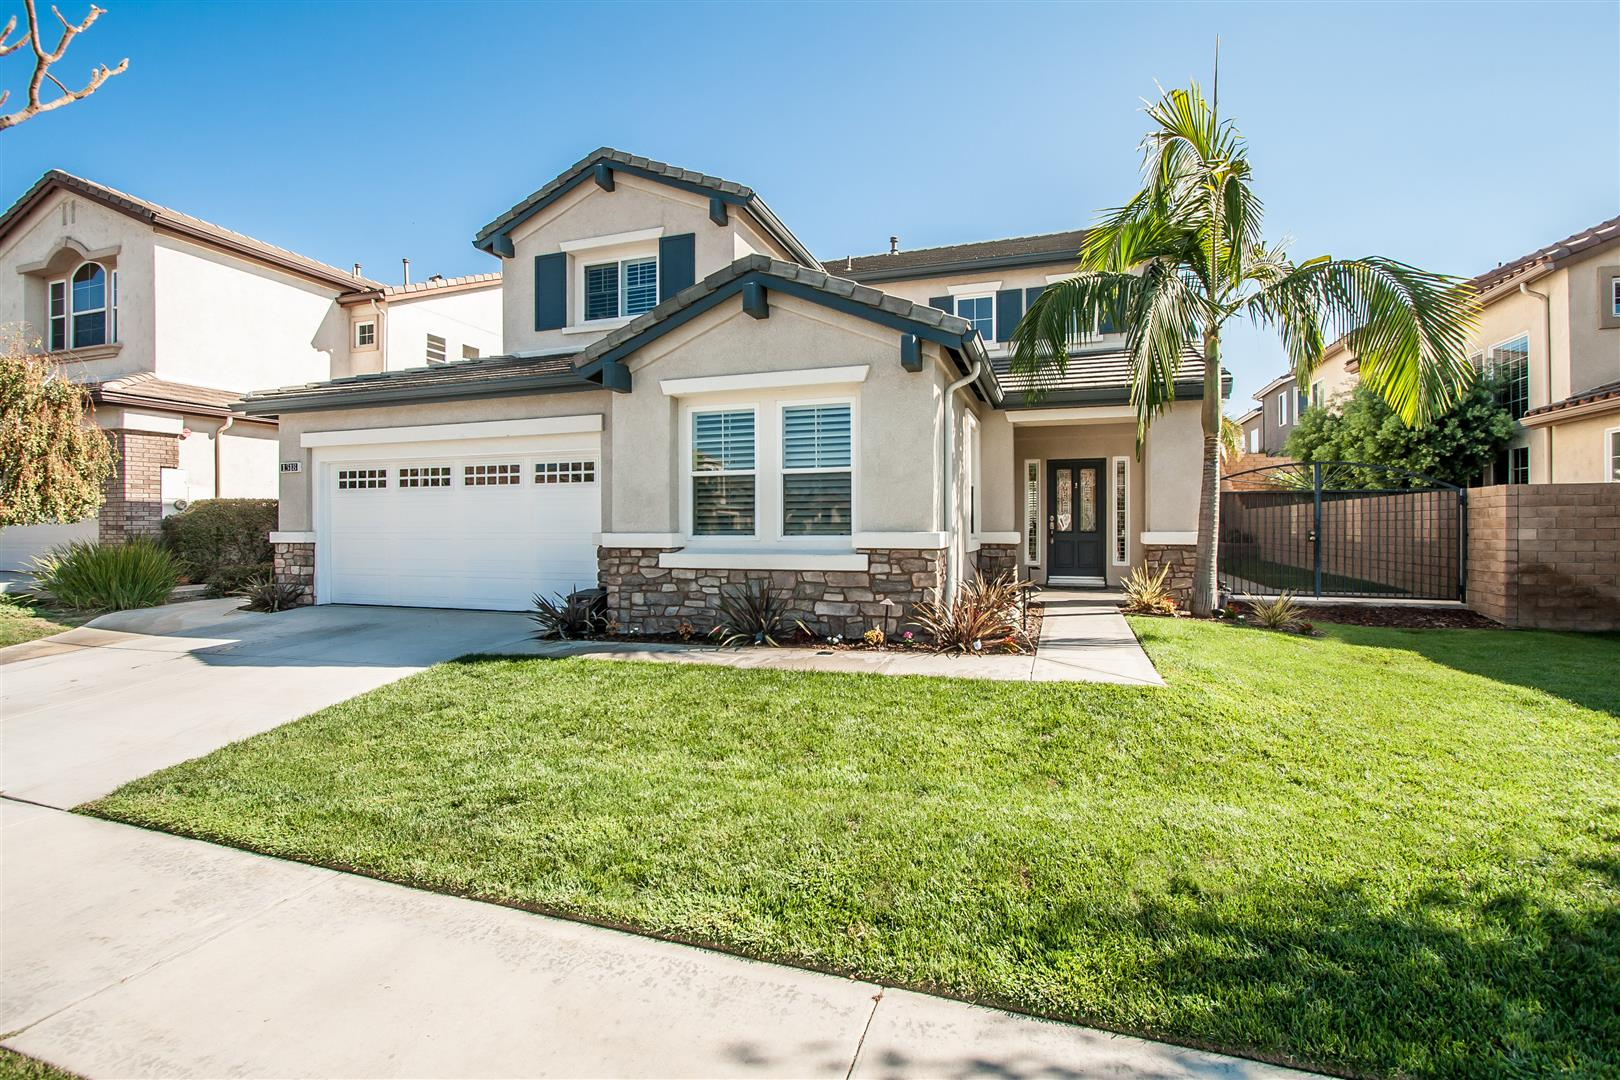 New Homes For Sale Placentia Ca